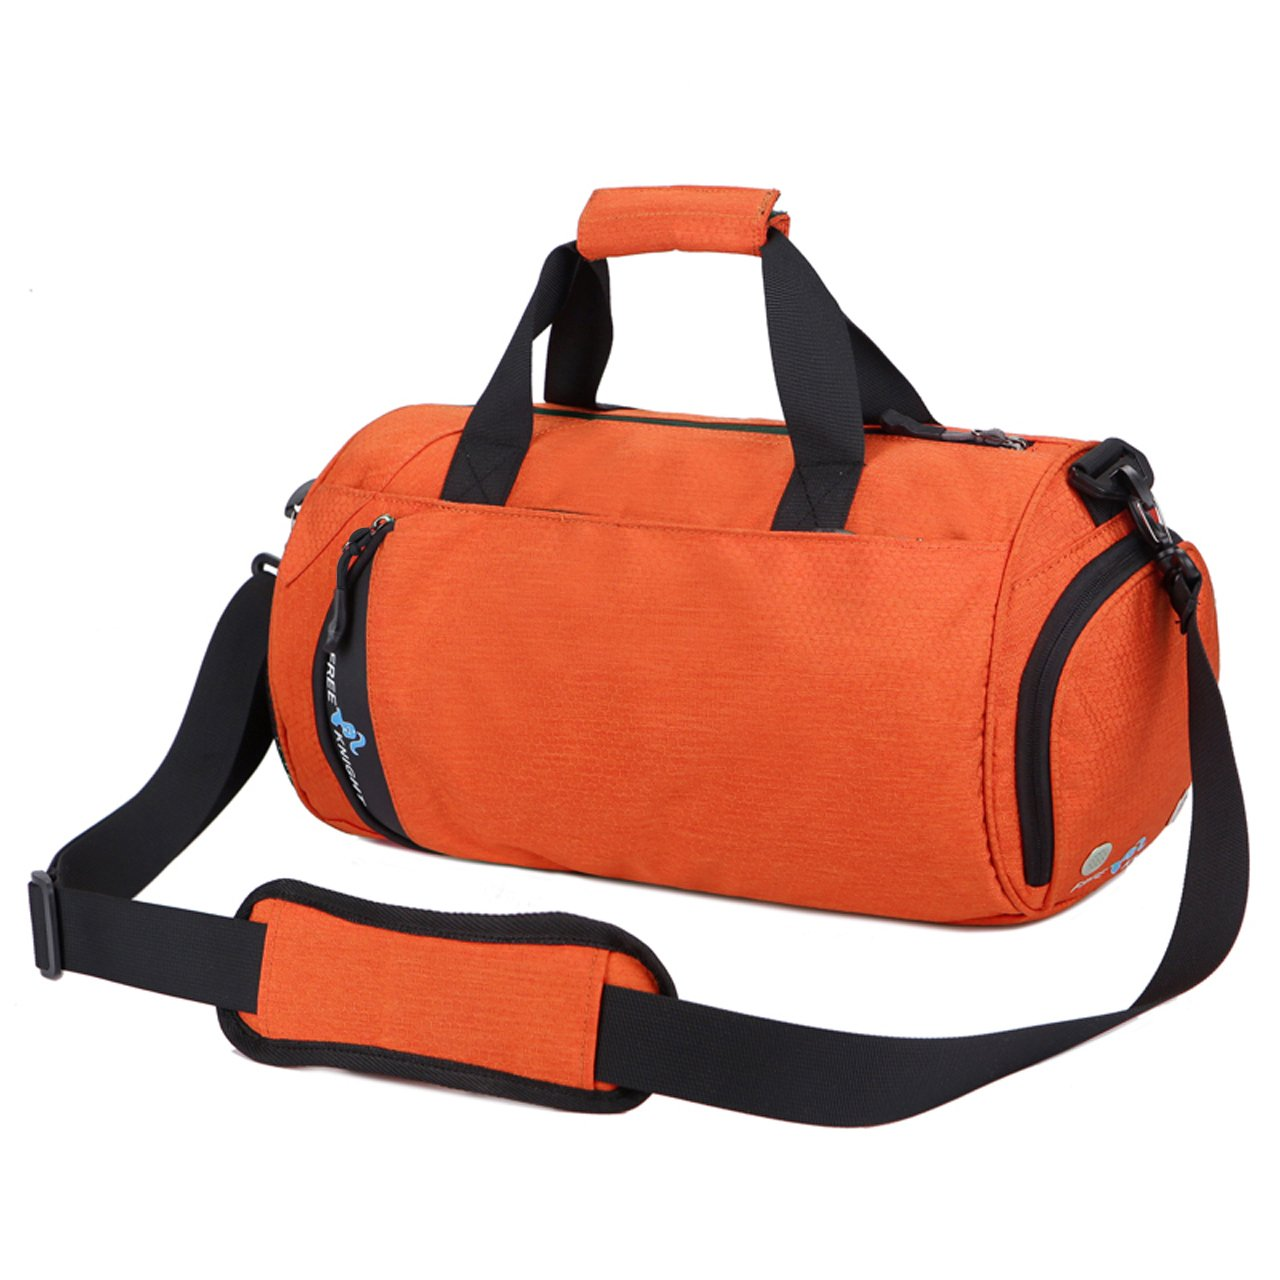 Faleto Canvas Sport Duffel Bag Gym Tote Bag with Shoe Compartment Small Fitness Yoga Equipment Bag Waterproof for Men Women